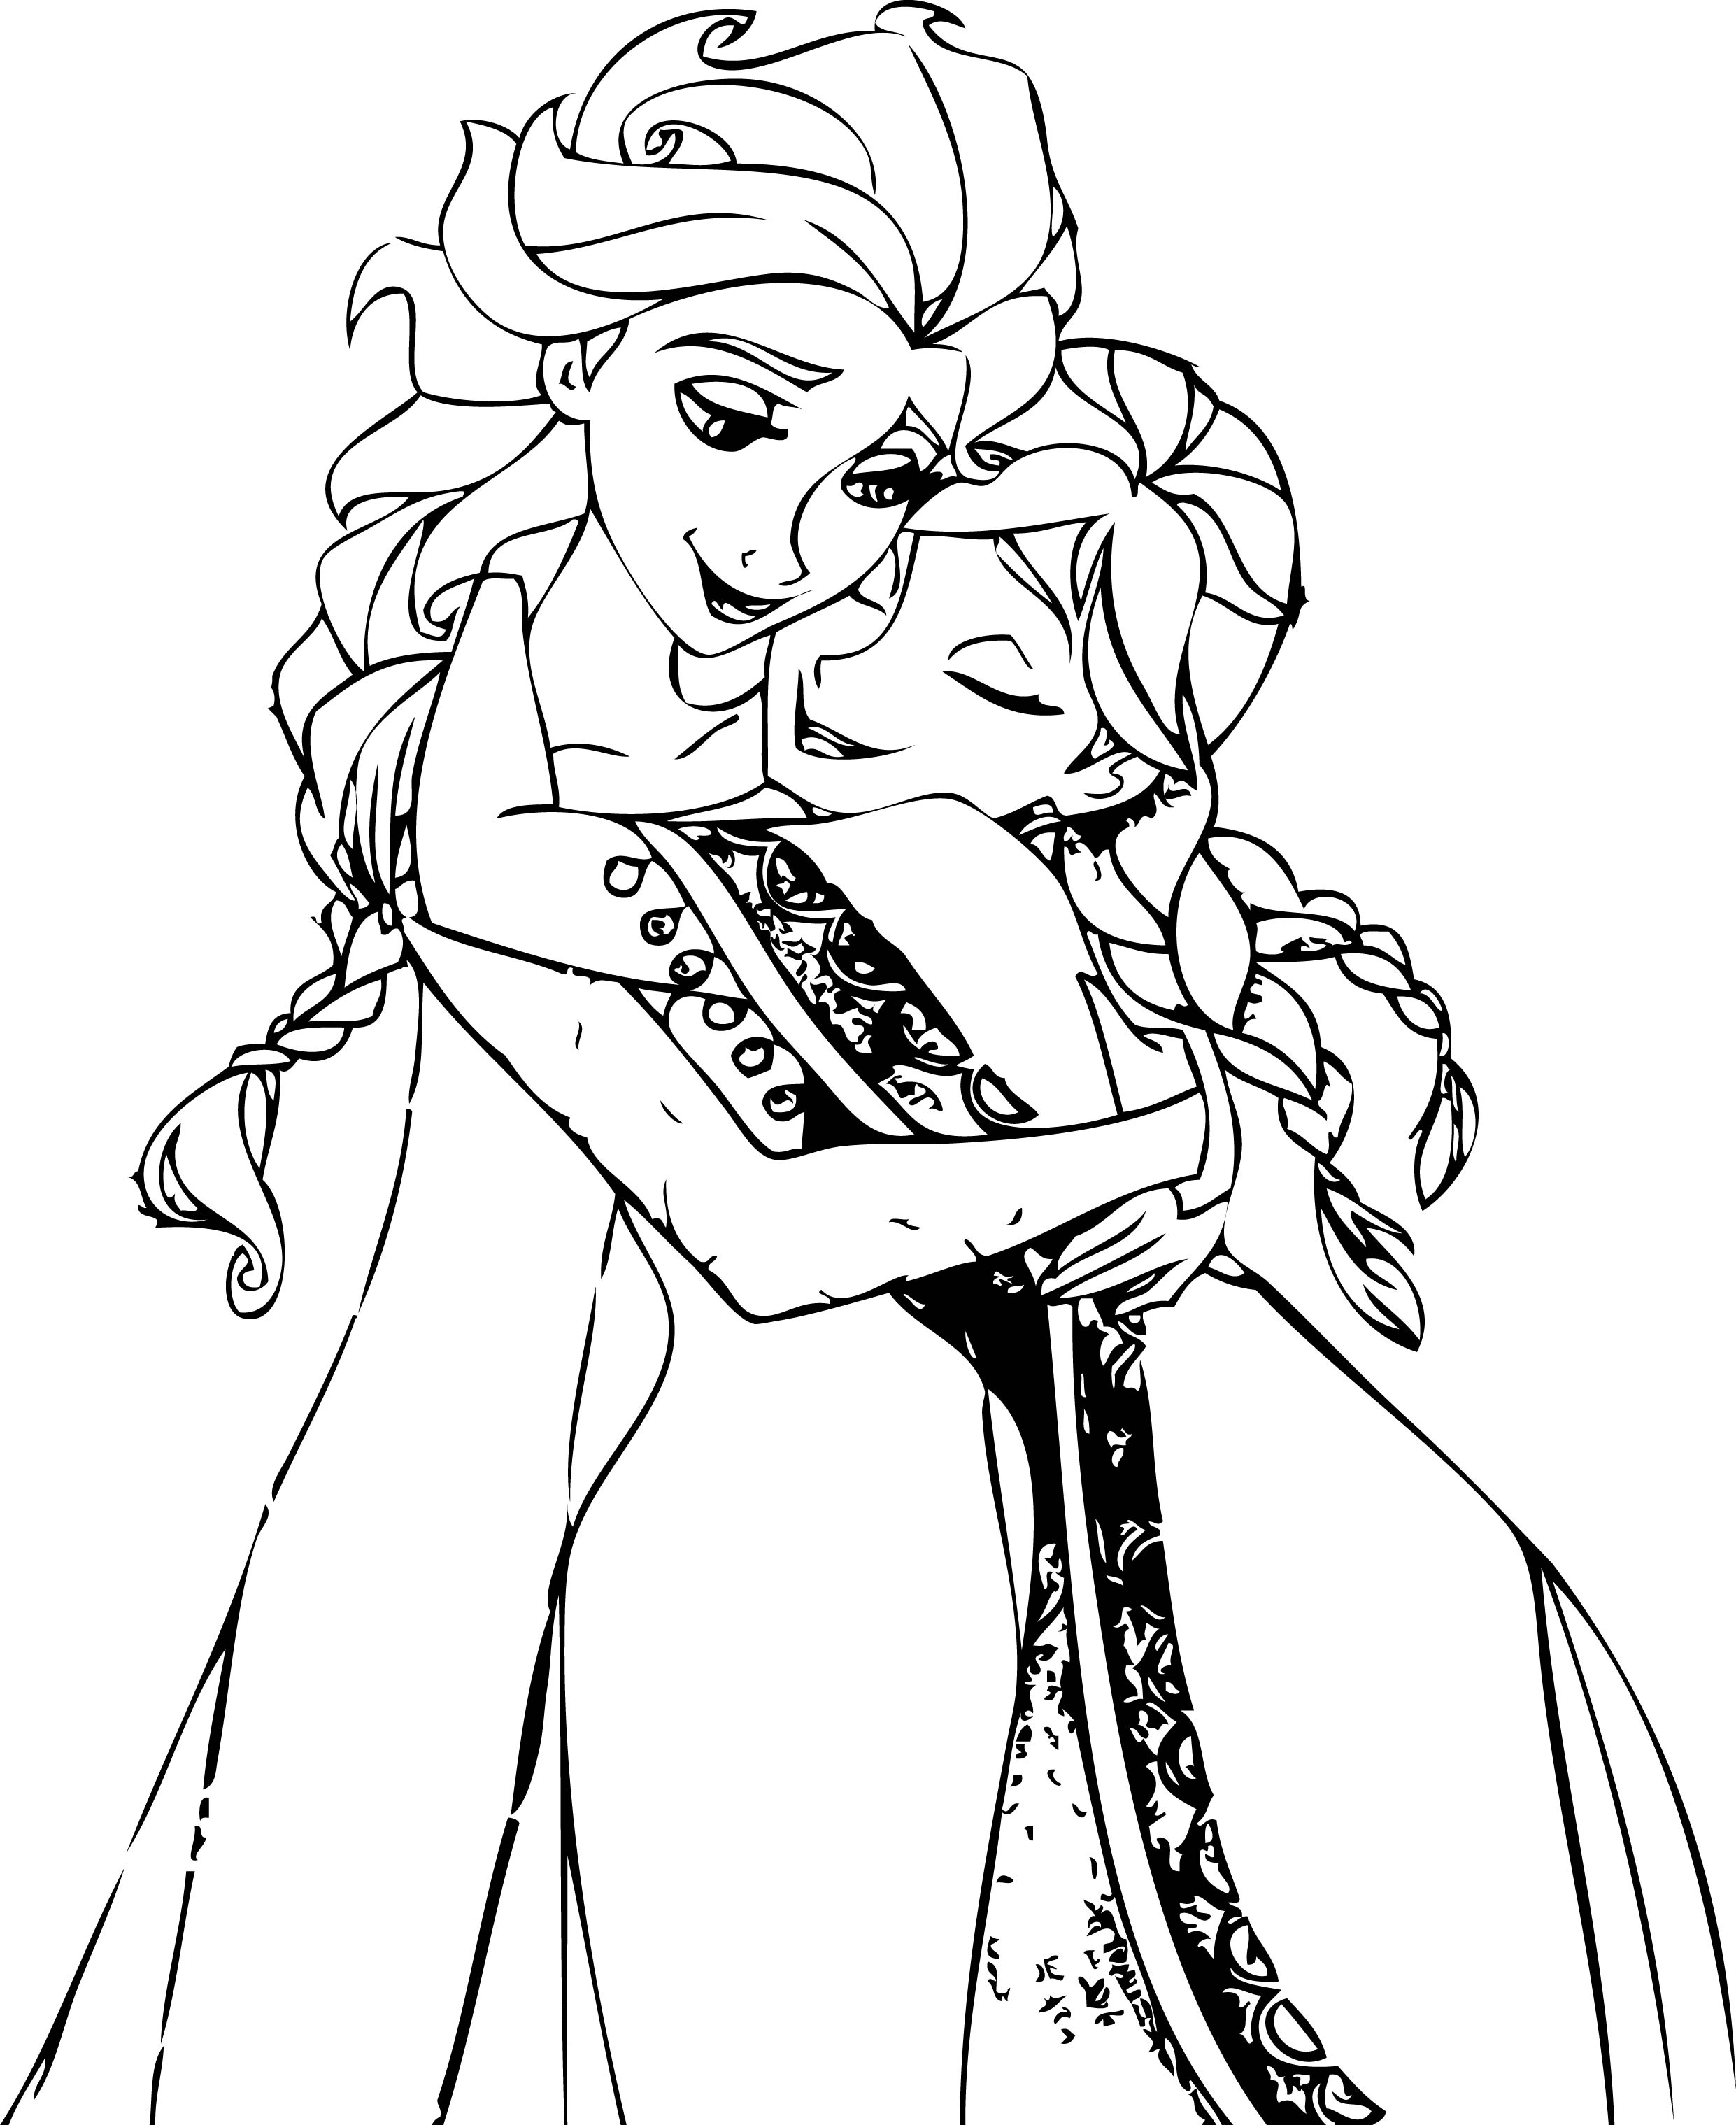 Anna And Elsa Coloring Pages Classy Elsa And Anna Hug Coloring Page  Wecoloringpage Decorating Inspiration